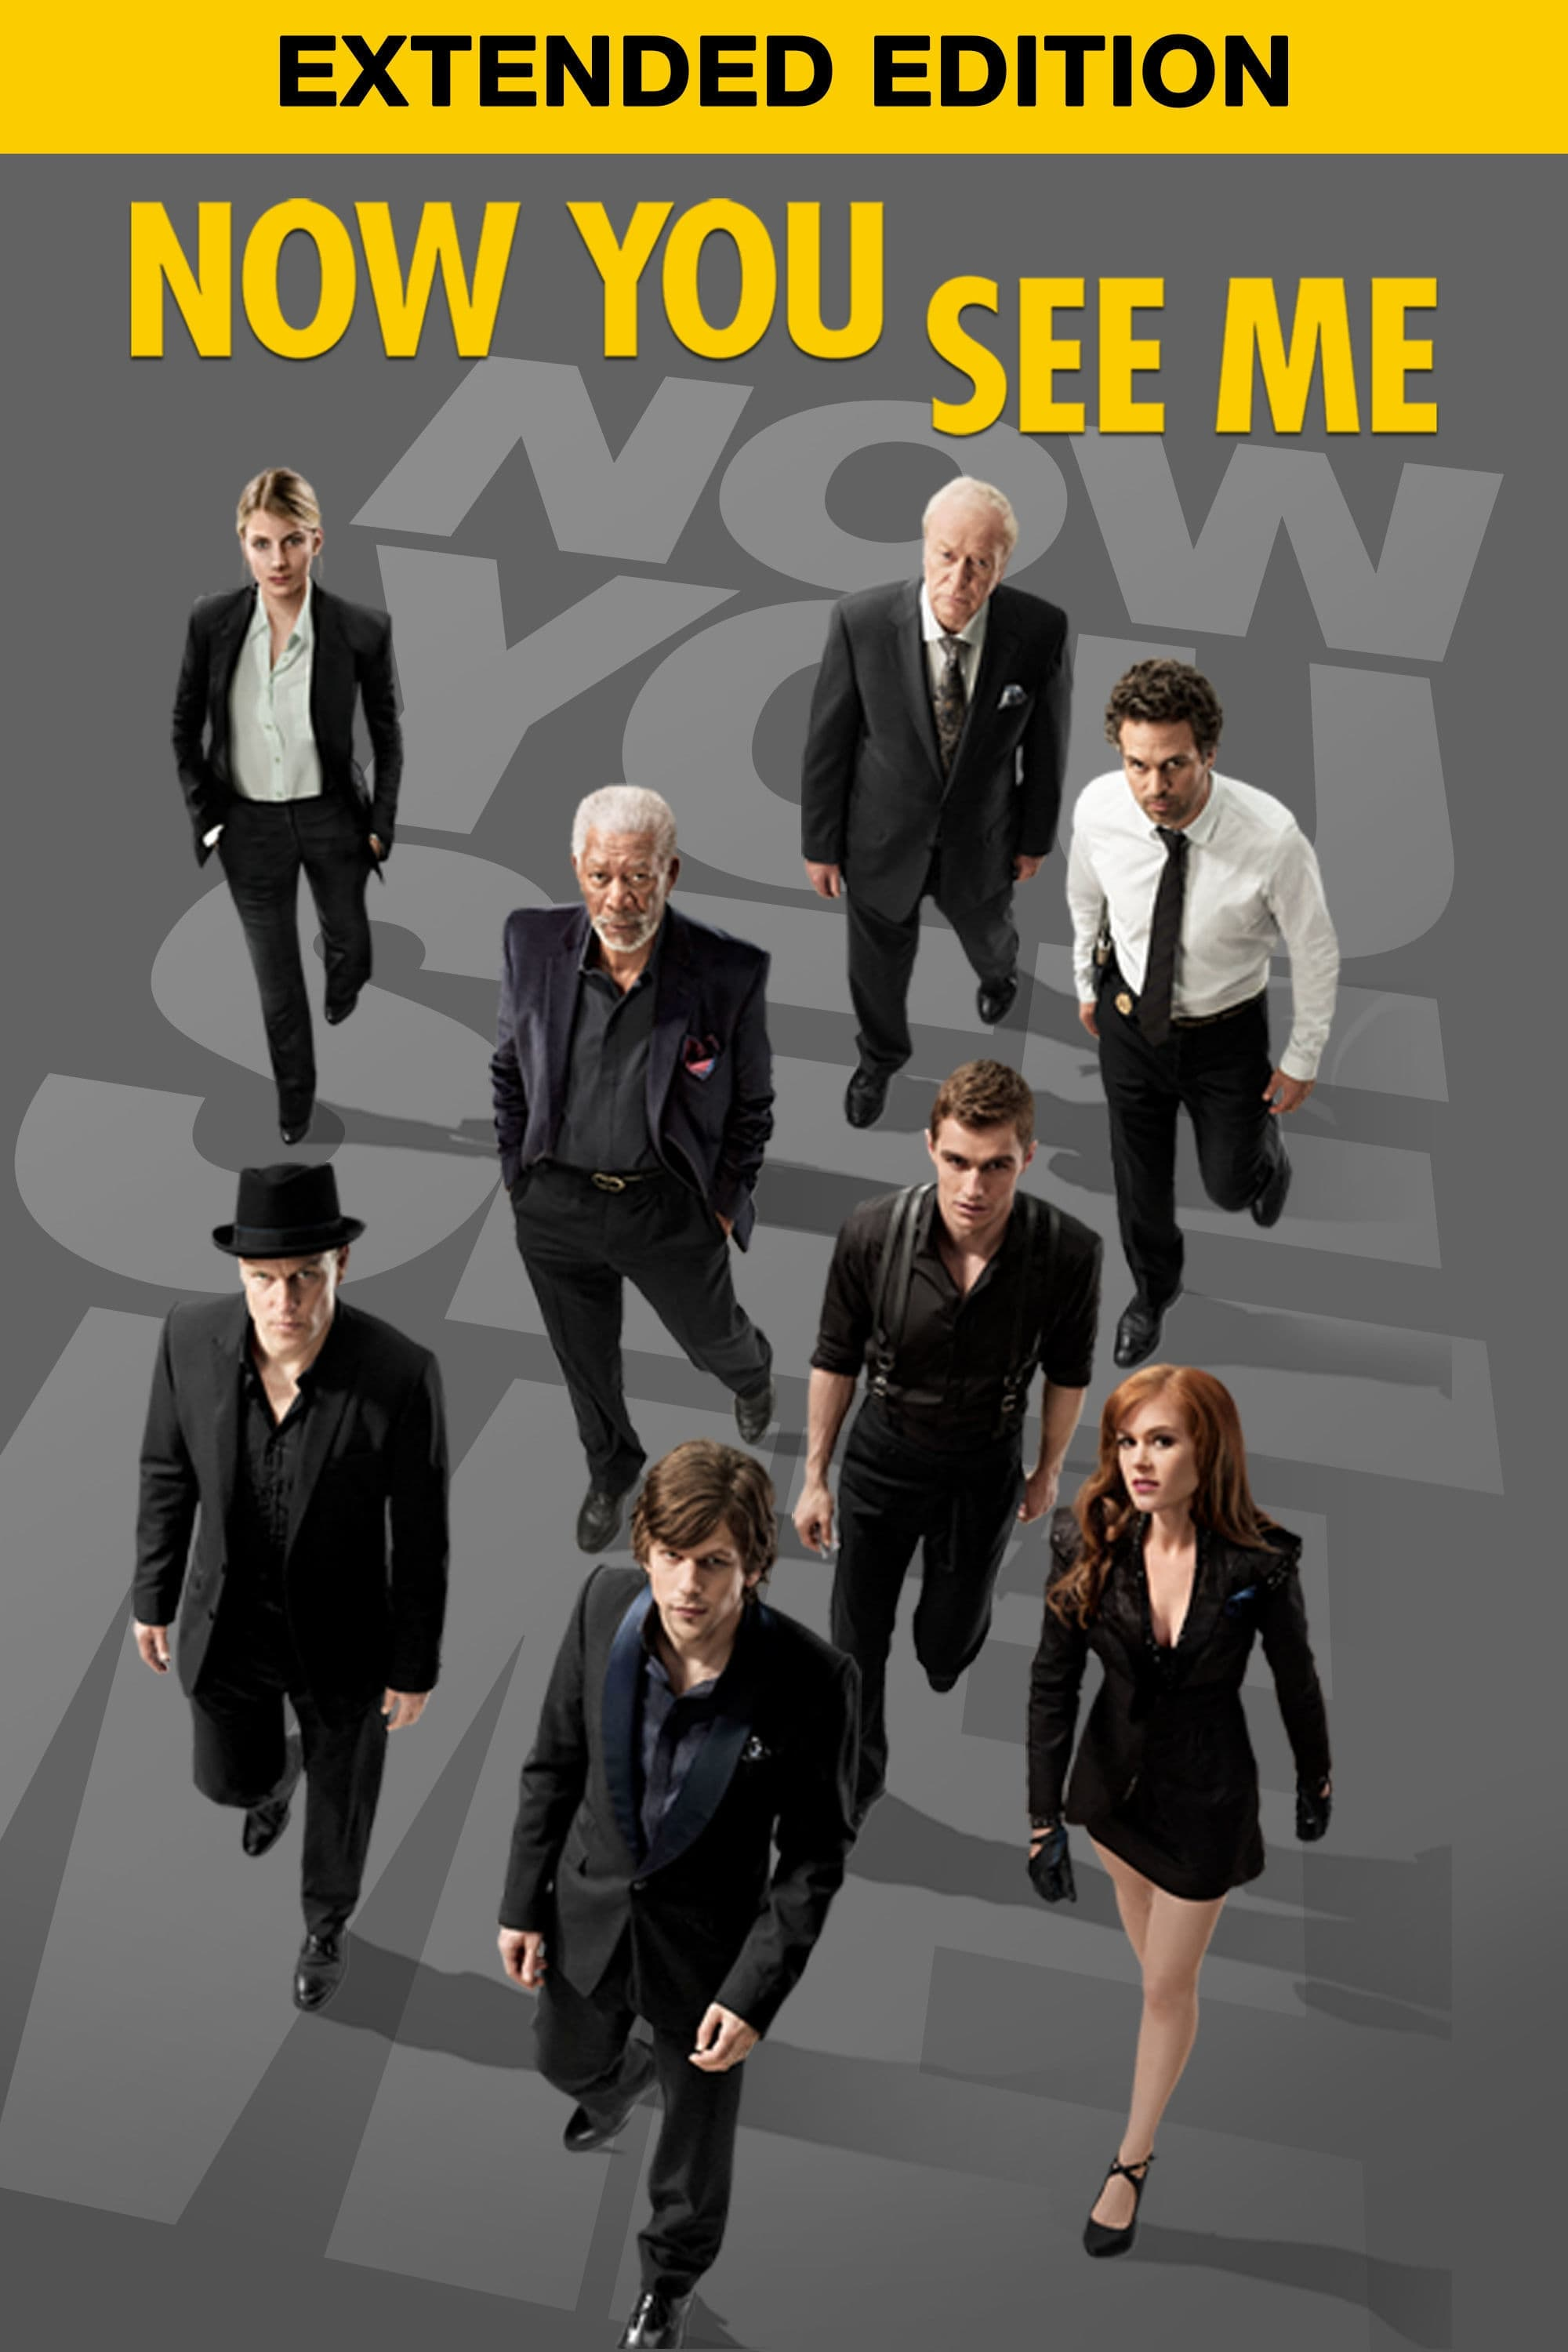 I Maghi Del Garage Streaming Ita Now You See Me I Maghi Del Crimine Streaming Film Ita